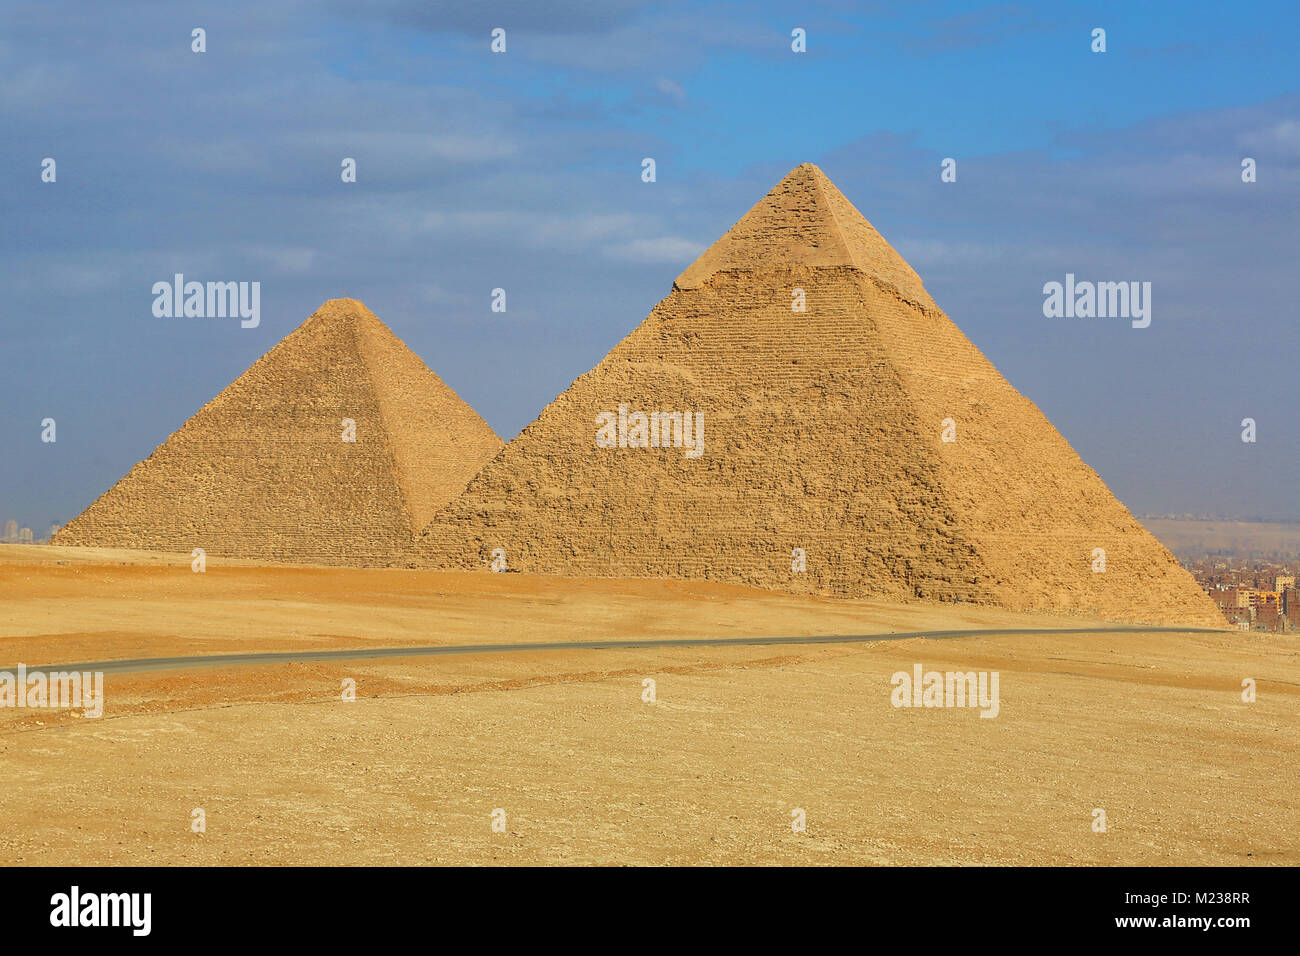 The Great Pyramid of Khufu (or Cheops)  and the Pyramid of Khafre (or Chephren) on the Giza Plateau, Cairo, Egypt - Stock Image